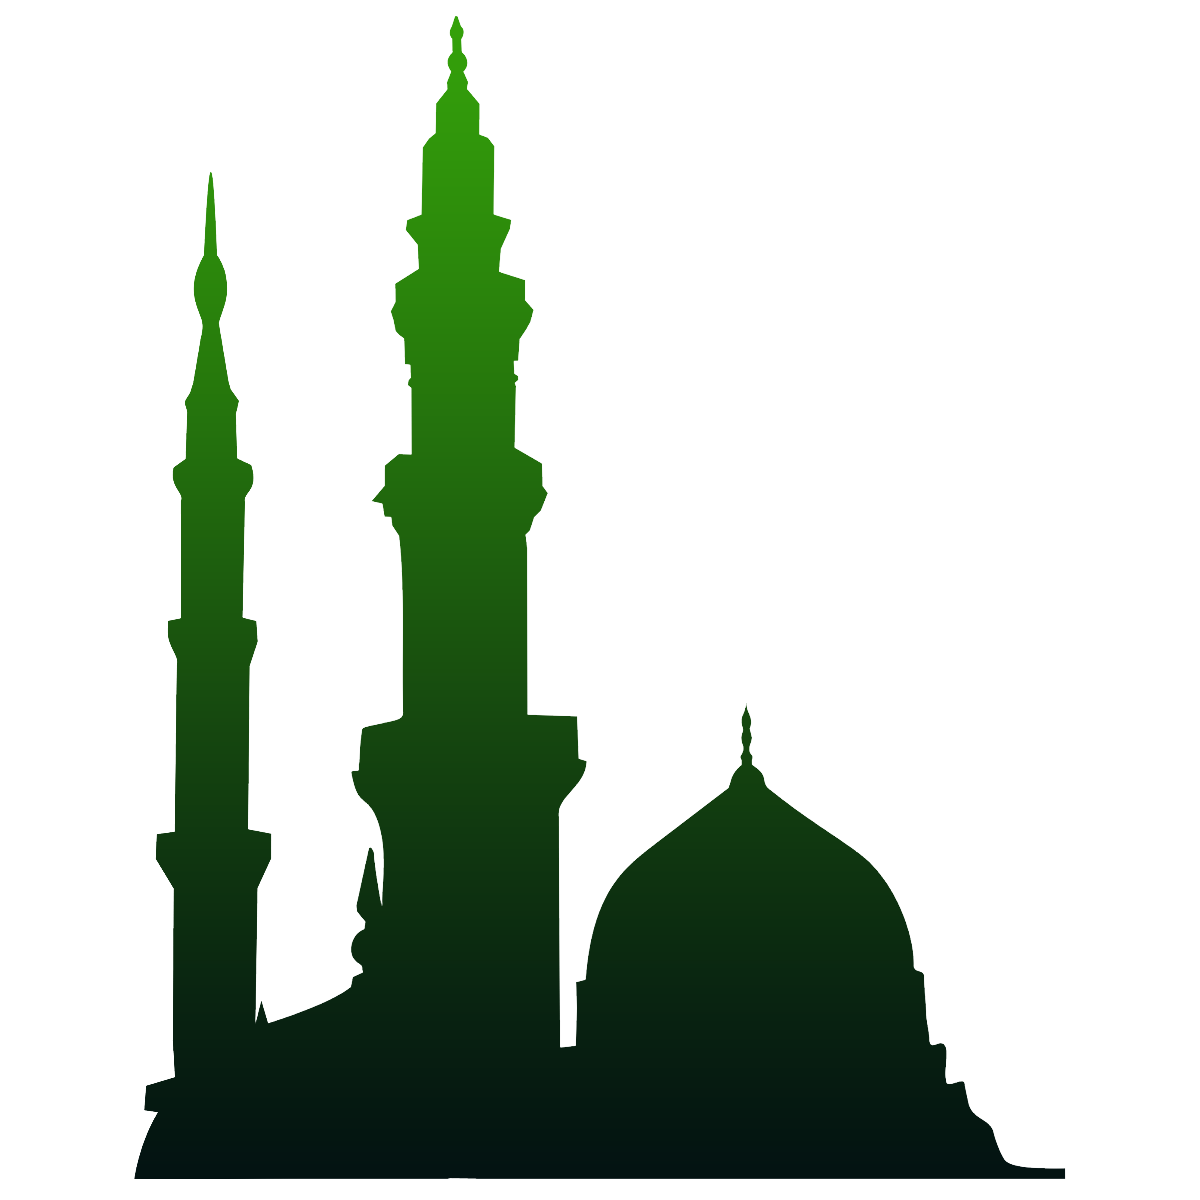 free download high quality madina icon png vector transparent background masjid e nabvi icon png this is vect islamic pictures background images mosque vector masjid e nabvi icon png